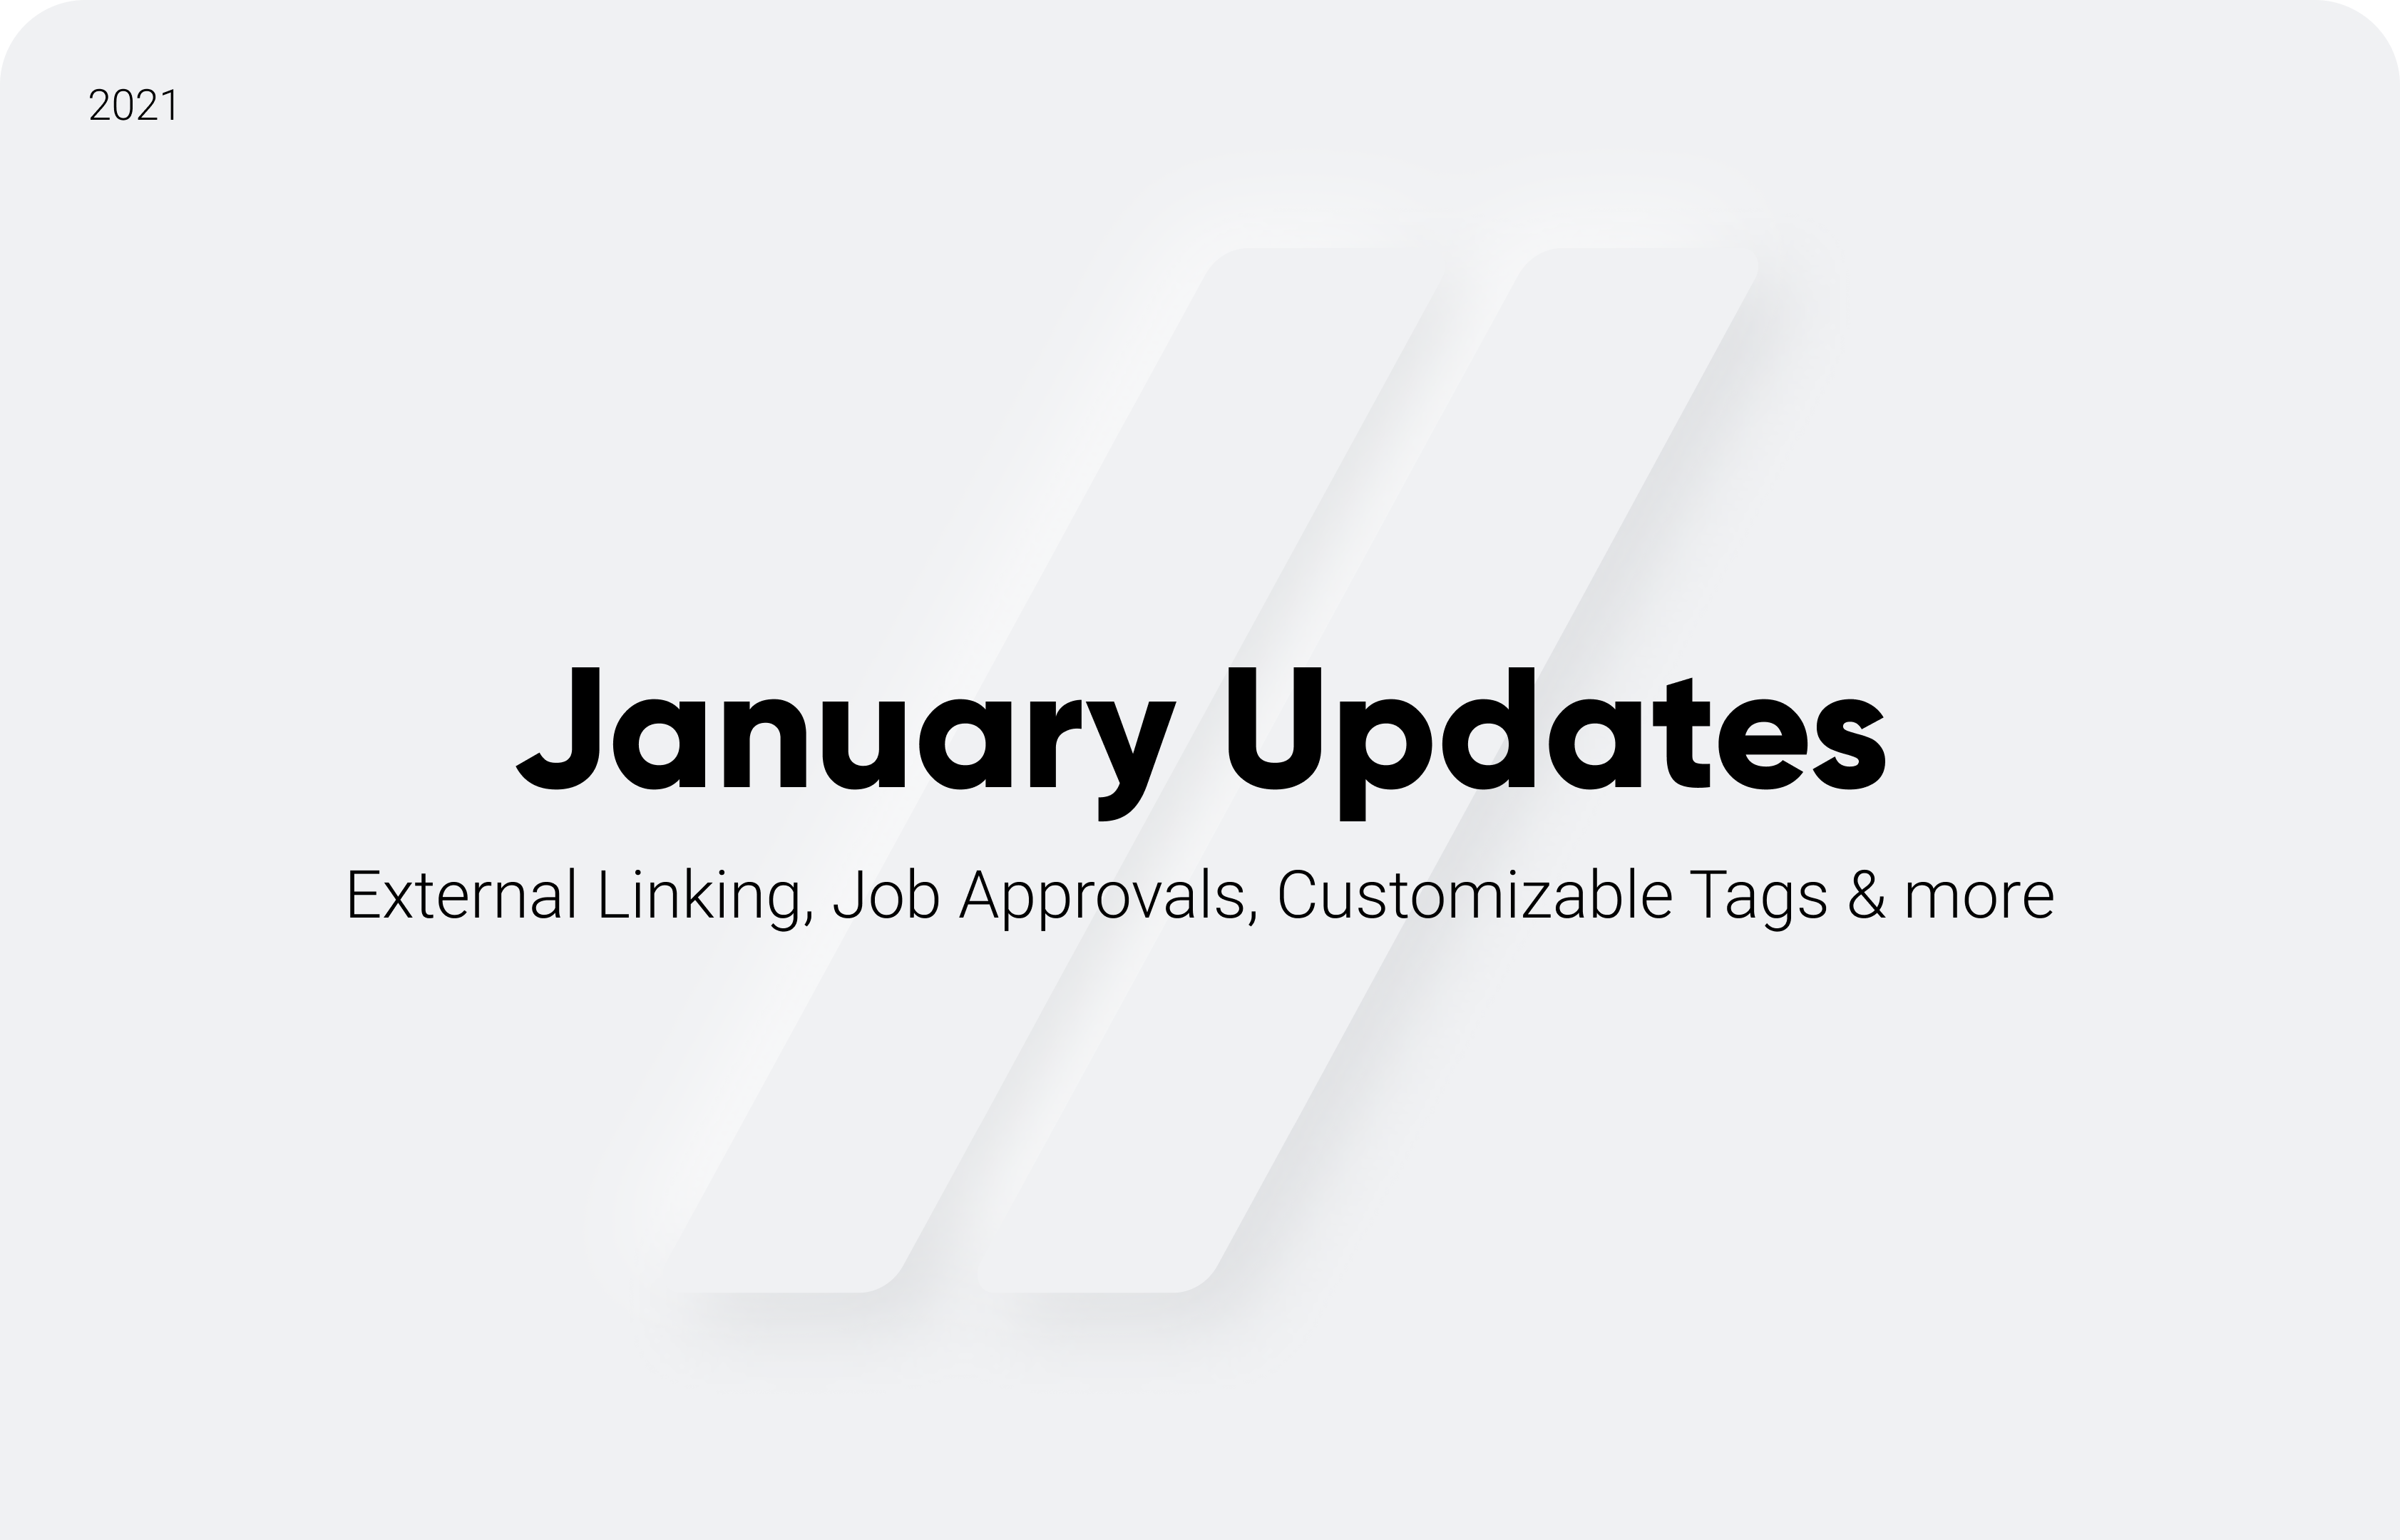 January Updates: External Linking, Job Approvals, Customizable Tags & more